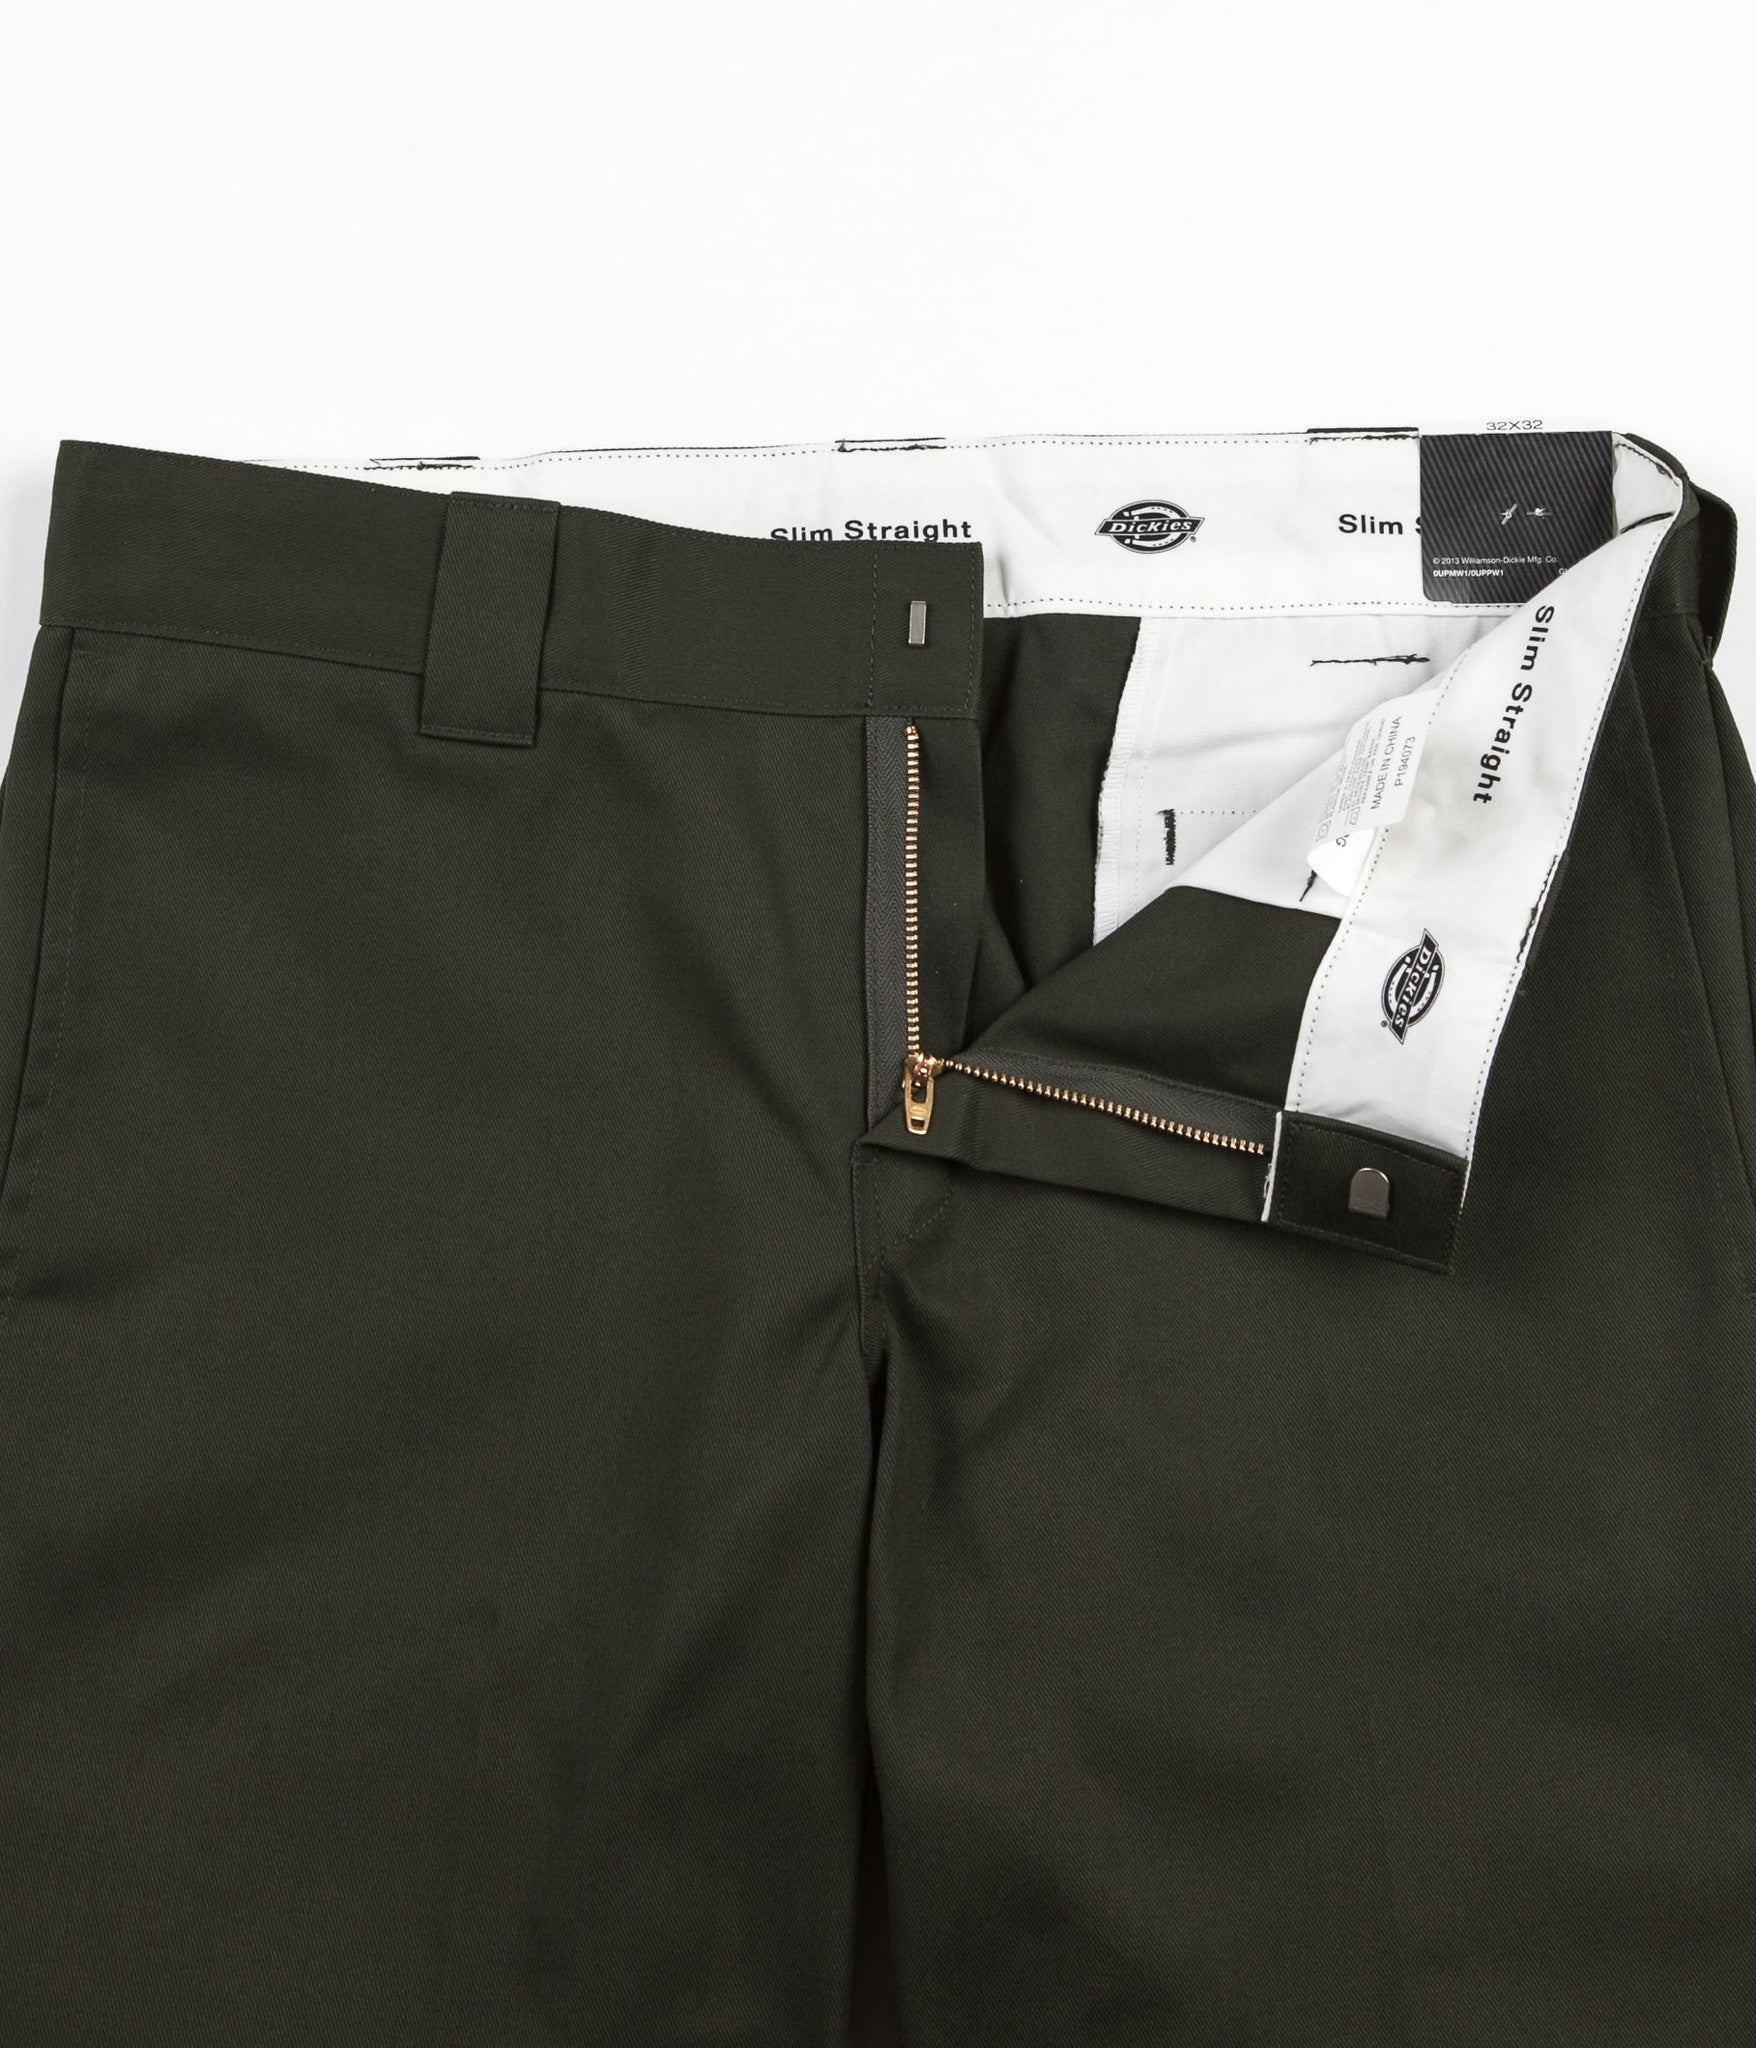 Dickies 873 Slim Straight Work Trousers - Olive Green